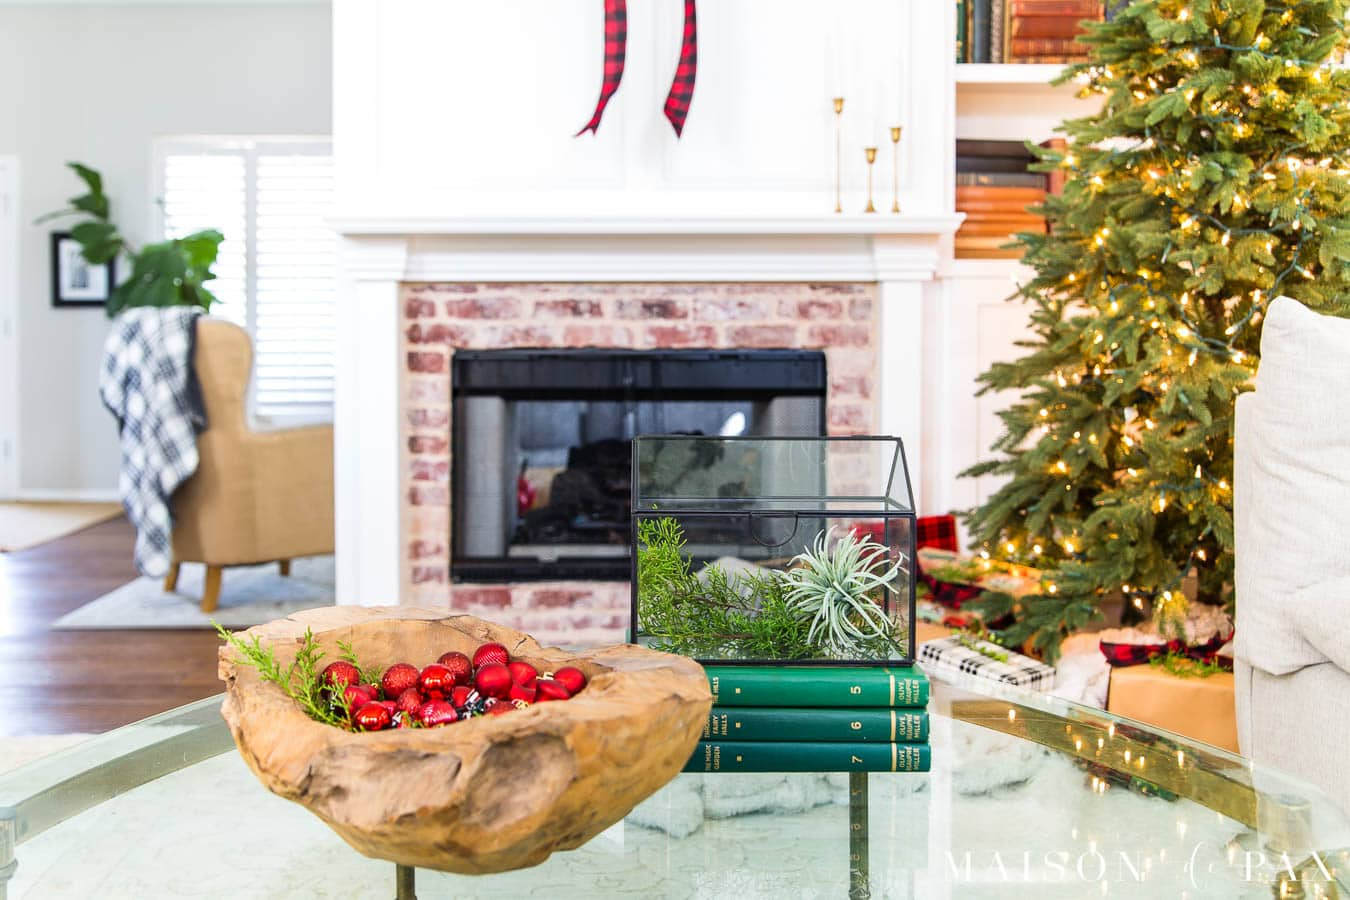 red and black and white plaid with red and green accents in Christmas living room | Maison de Pax